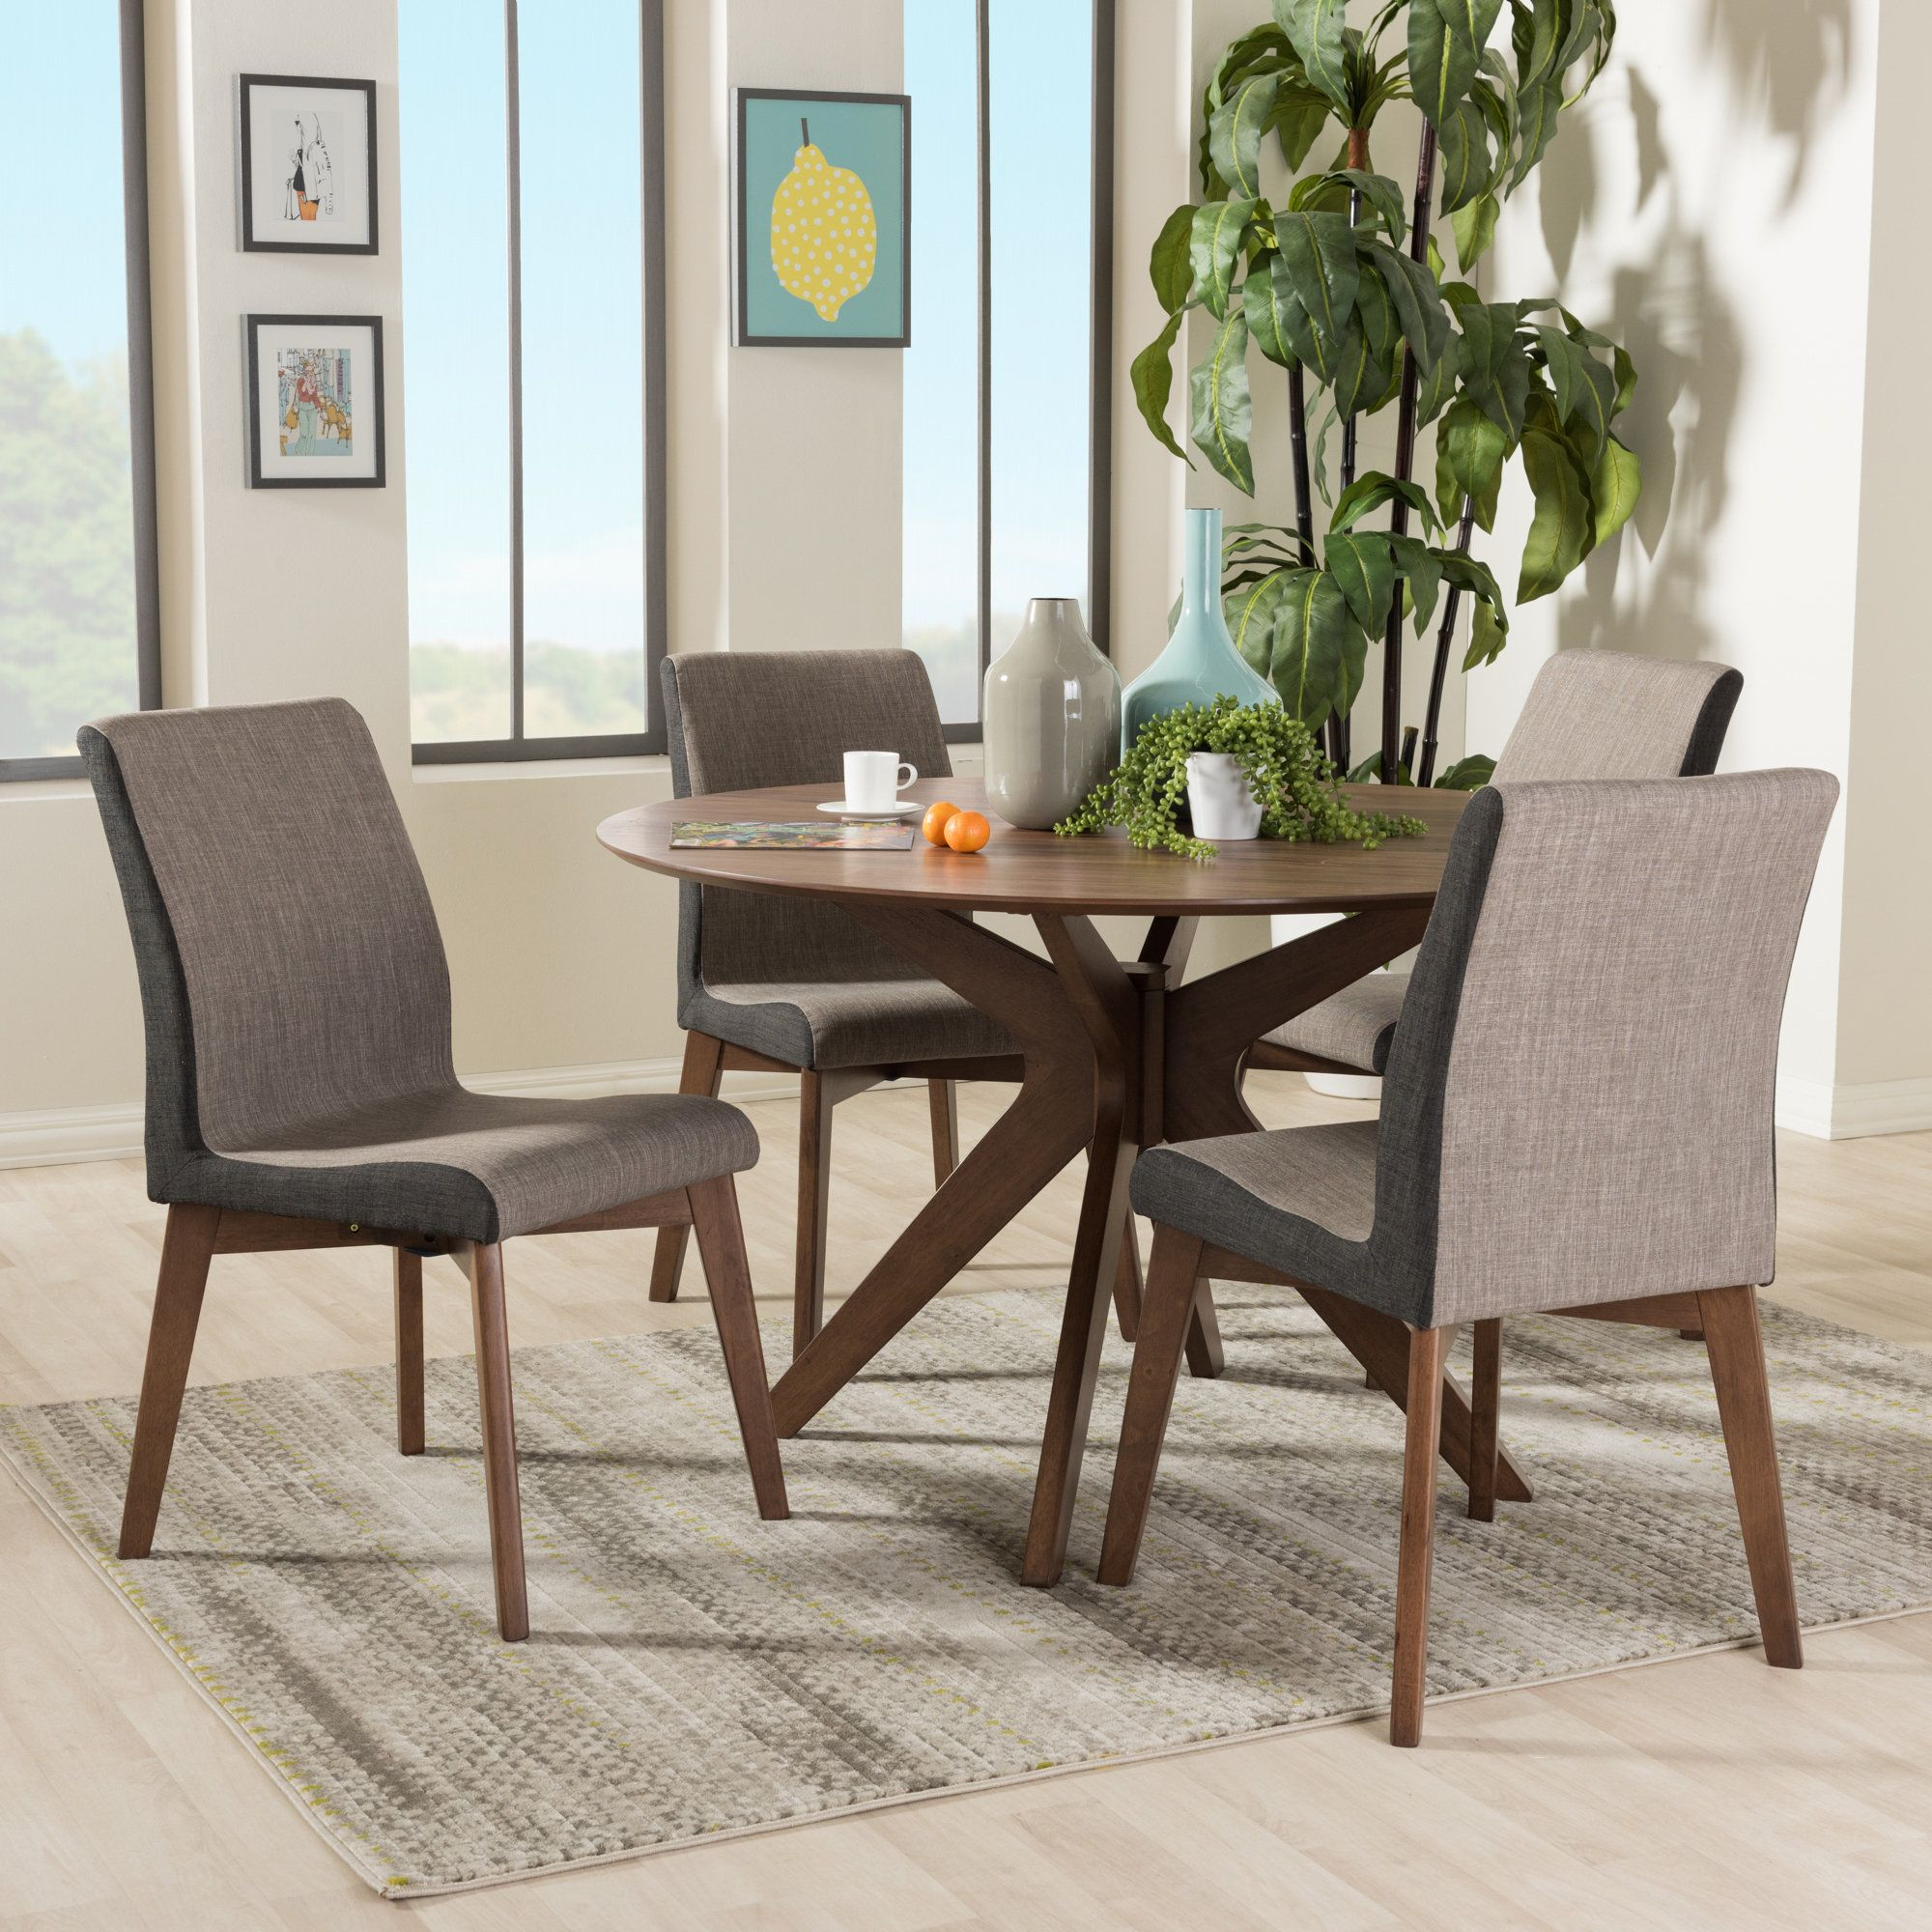 Kitchen bistro set  Dining Room Sets Find the dining room table and chair set that fits